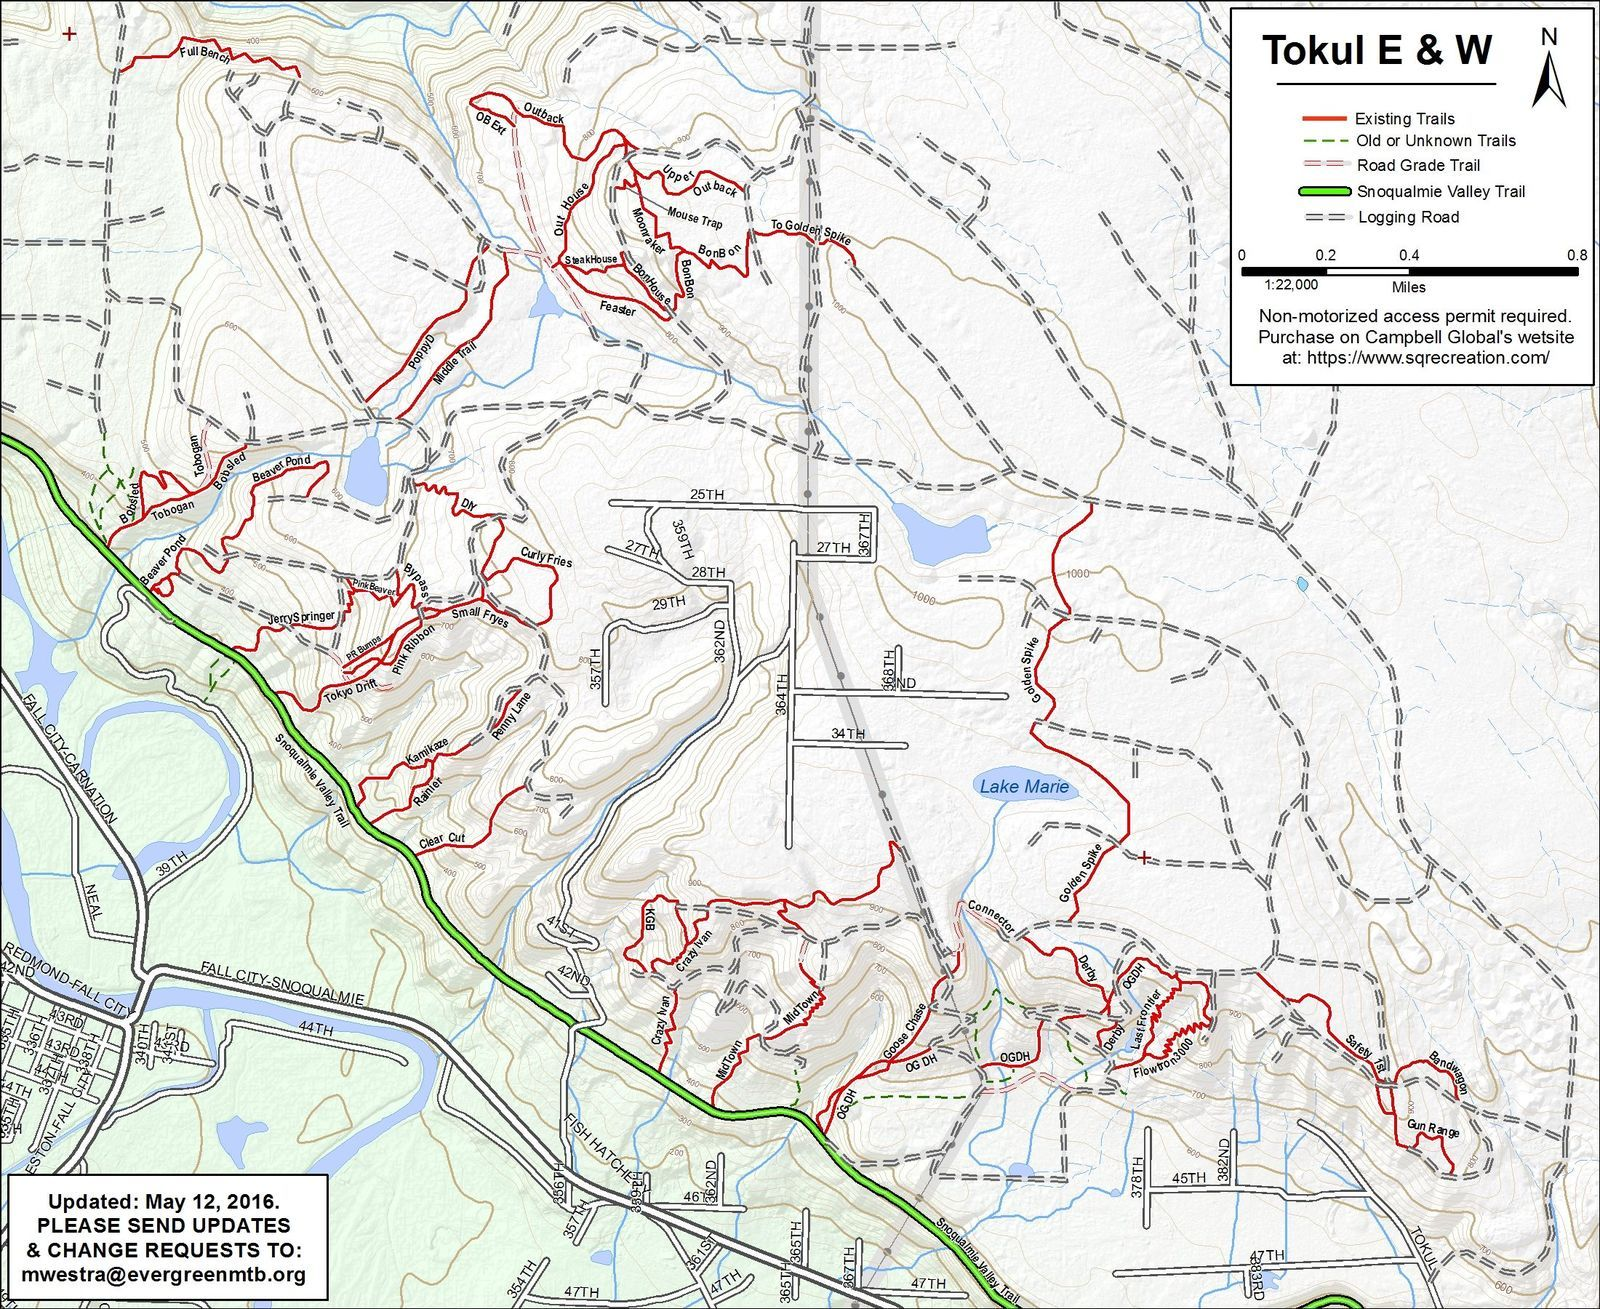 Tokul East on campbell hill map, mountain bike trail map, johnson hill map, banner forest map, adams hill map, baker hill map, king hill map,